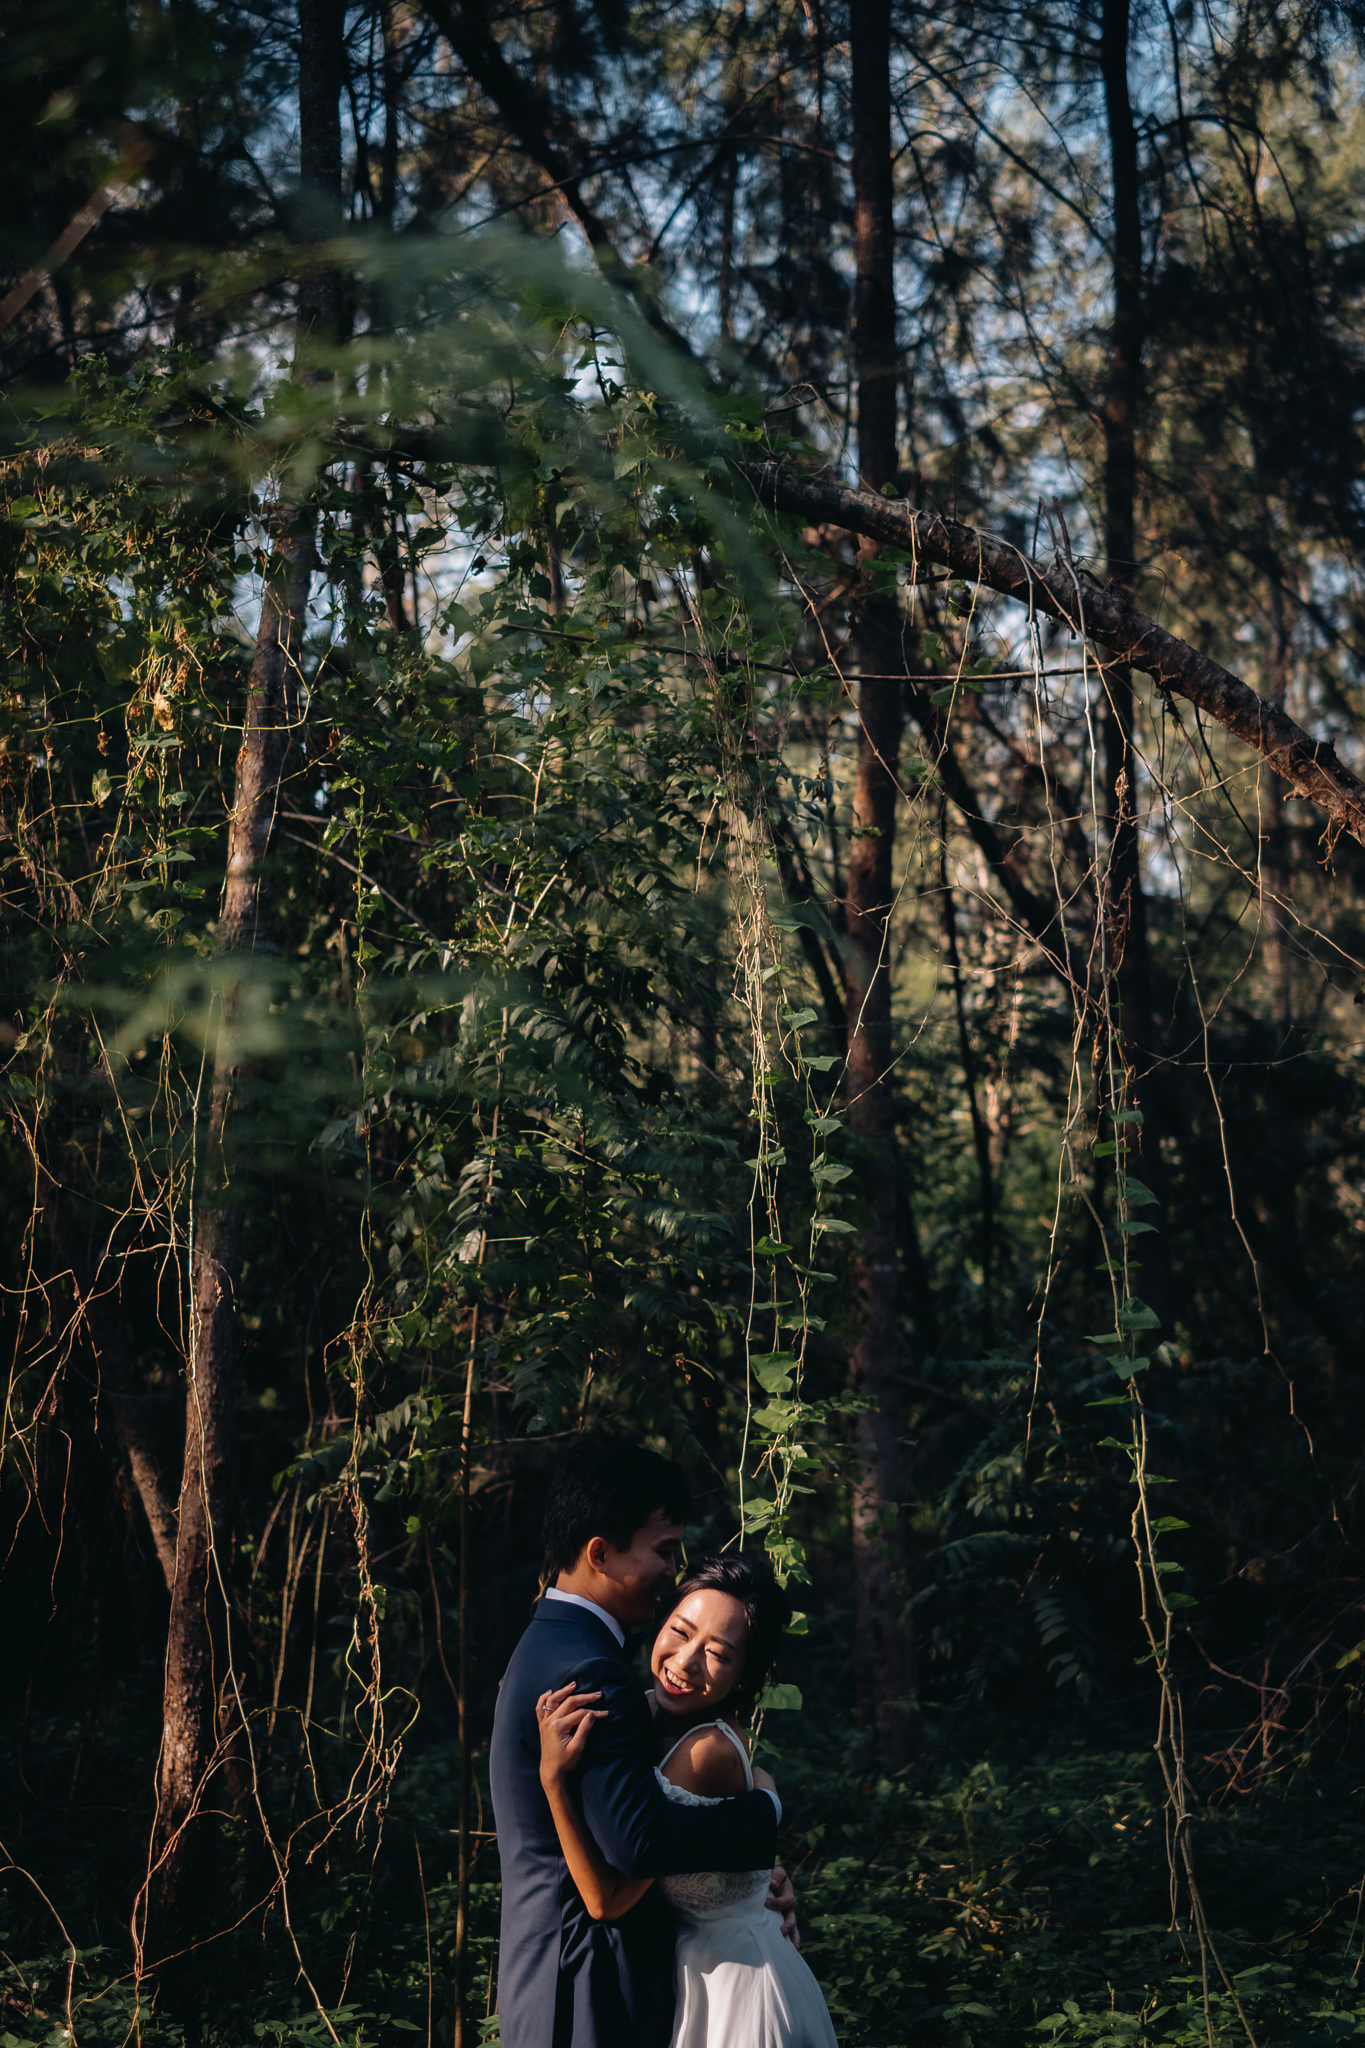 Sabrina & Willy Pre-Wed (resized for sharing) - 056.jpg